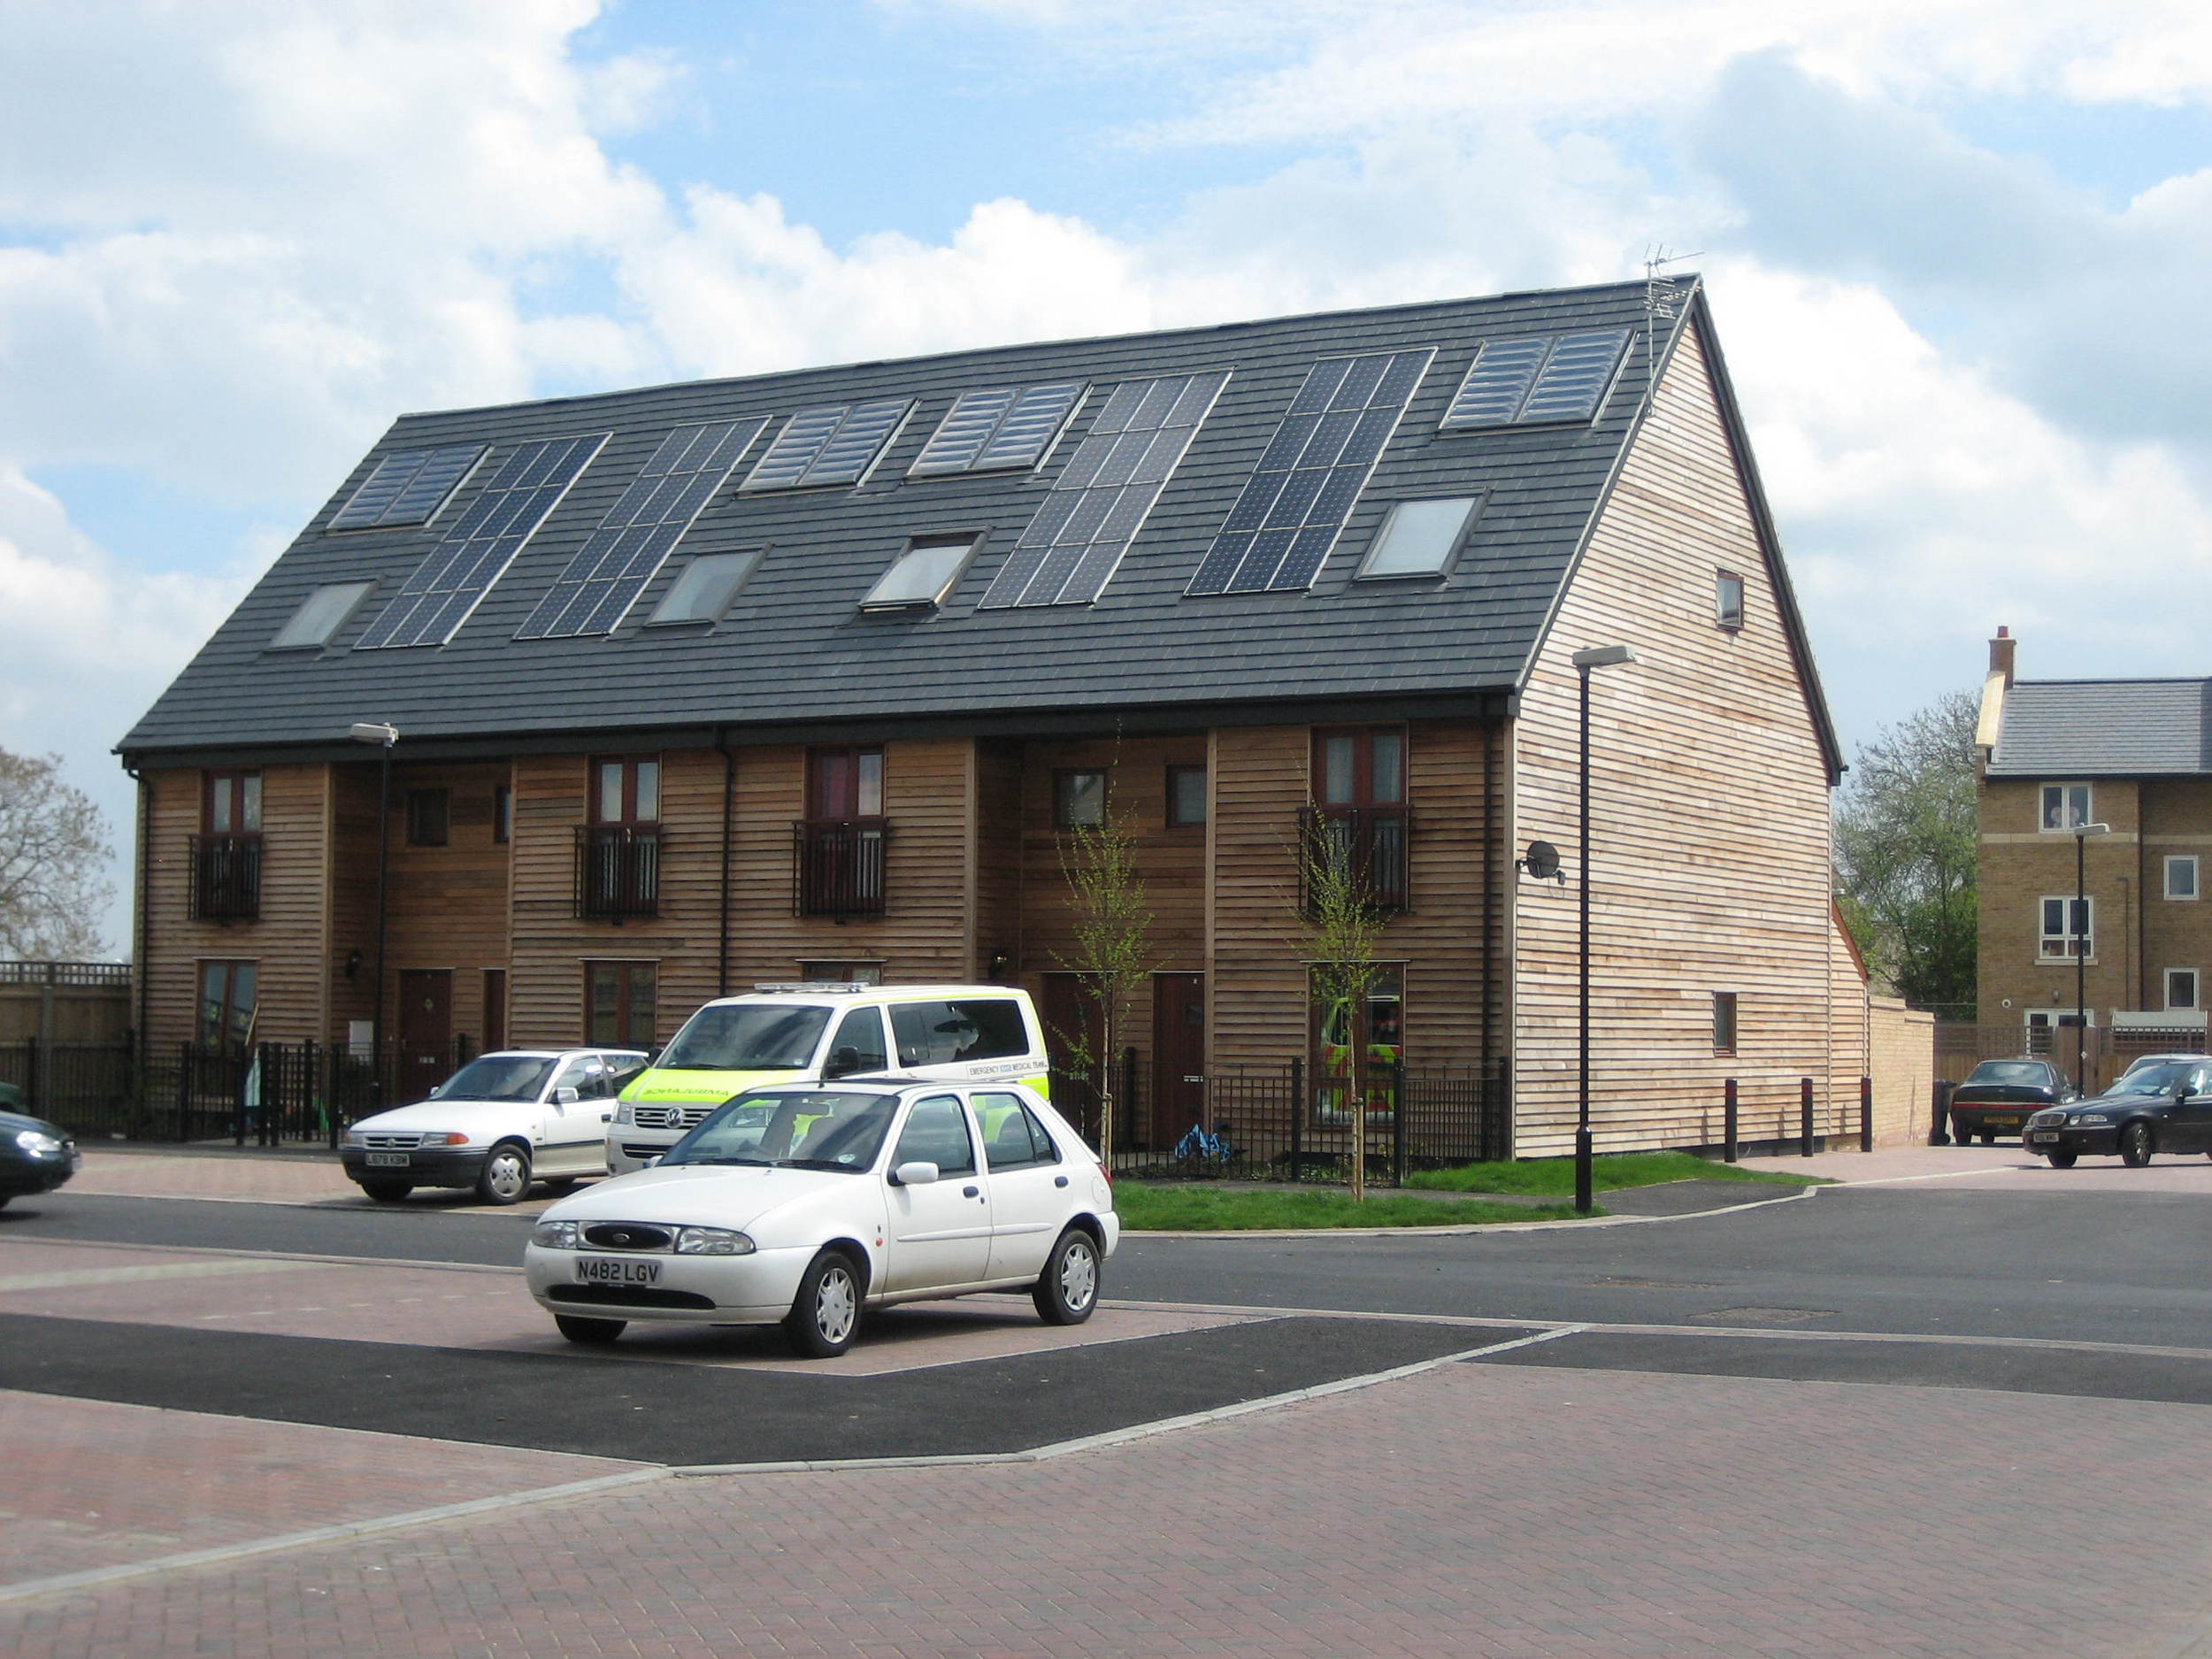 Flat plate colletors and PV modules integrated into the roof - Cambourne.JPG